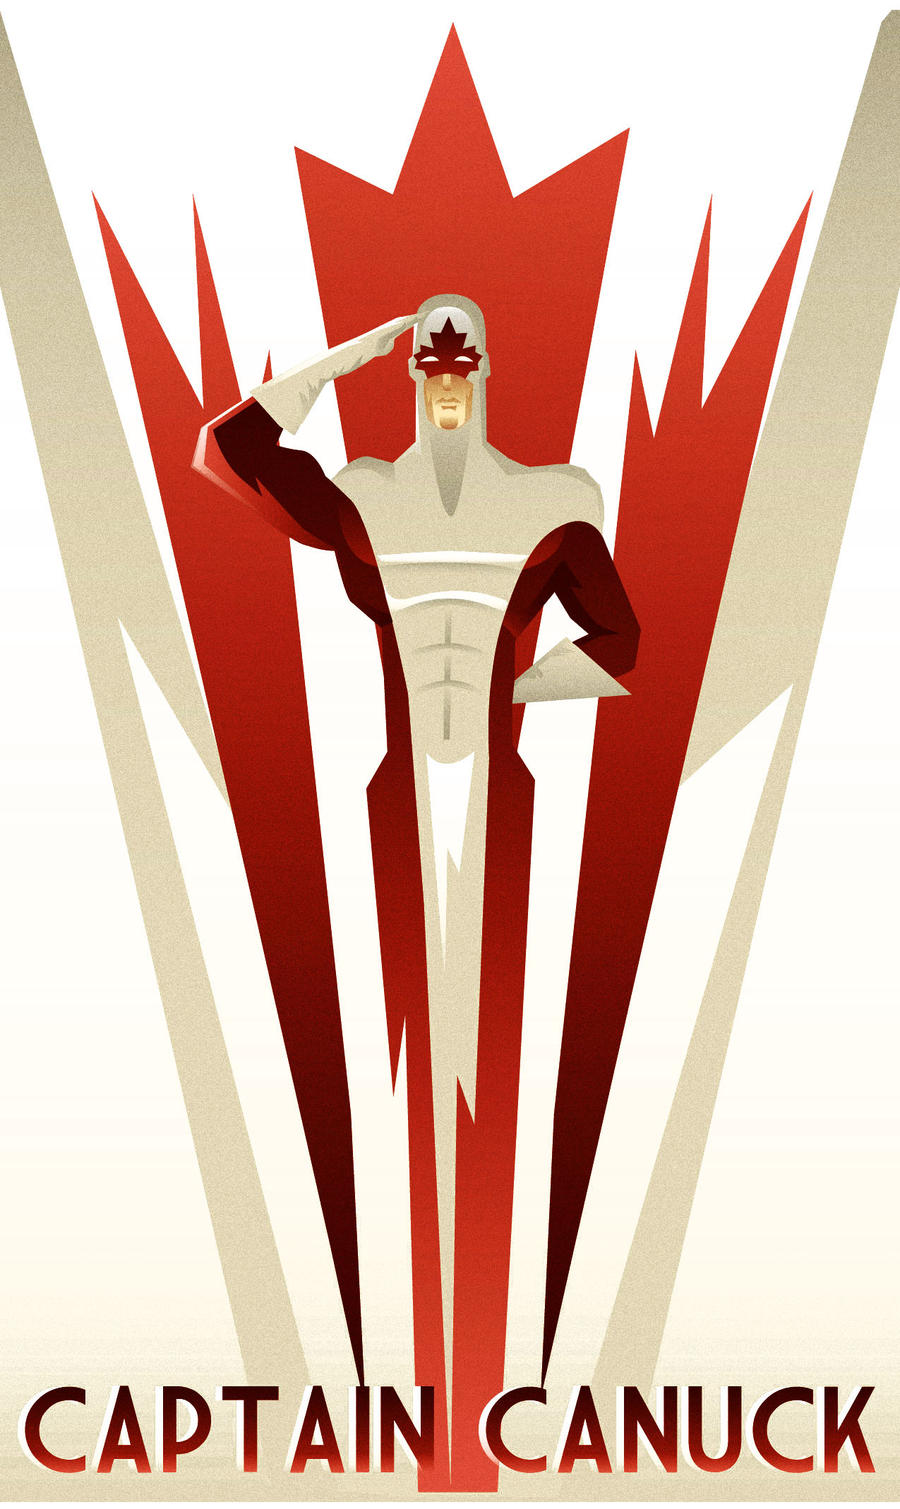 Captain Canuck by rodolforever